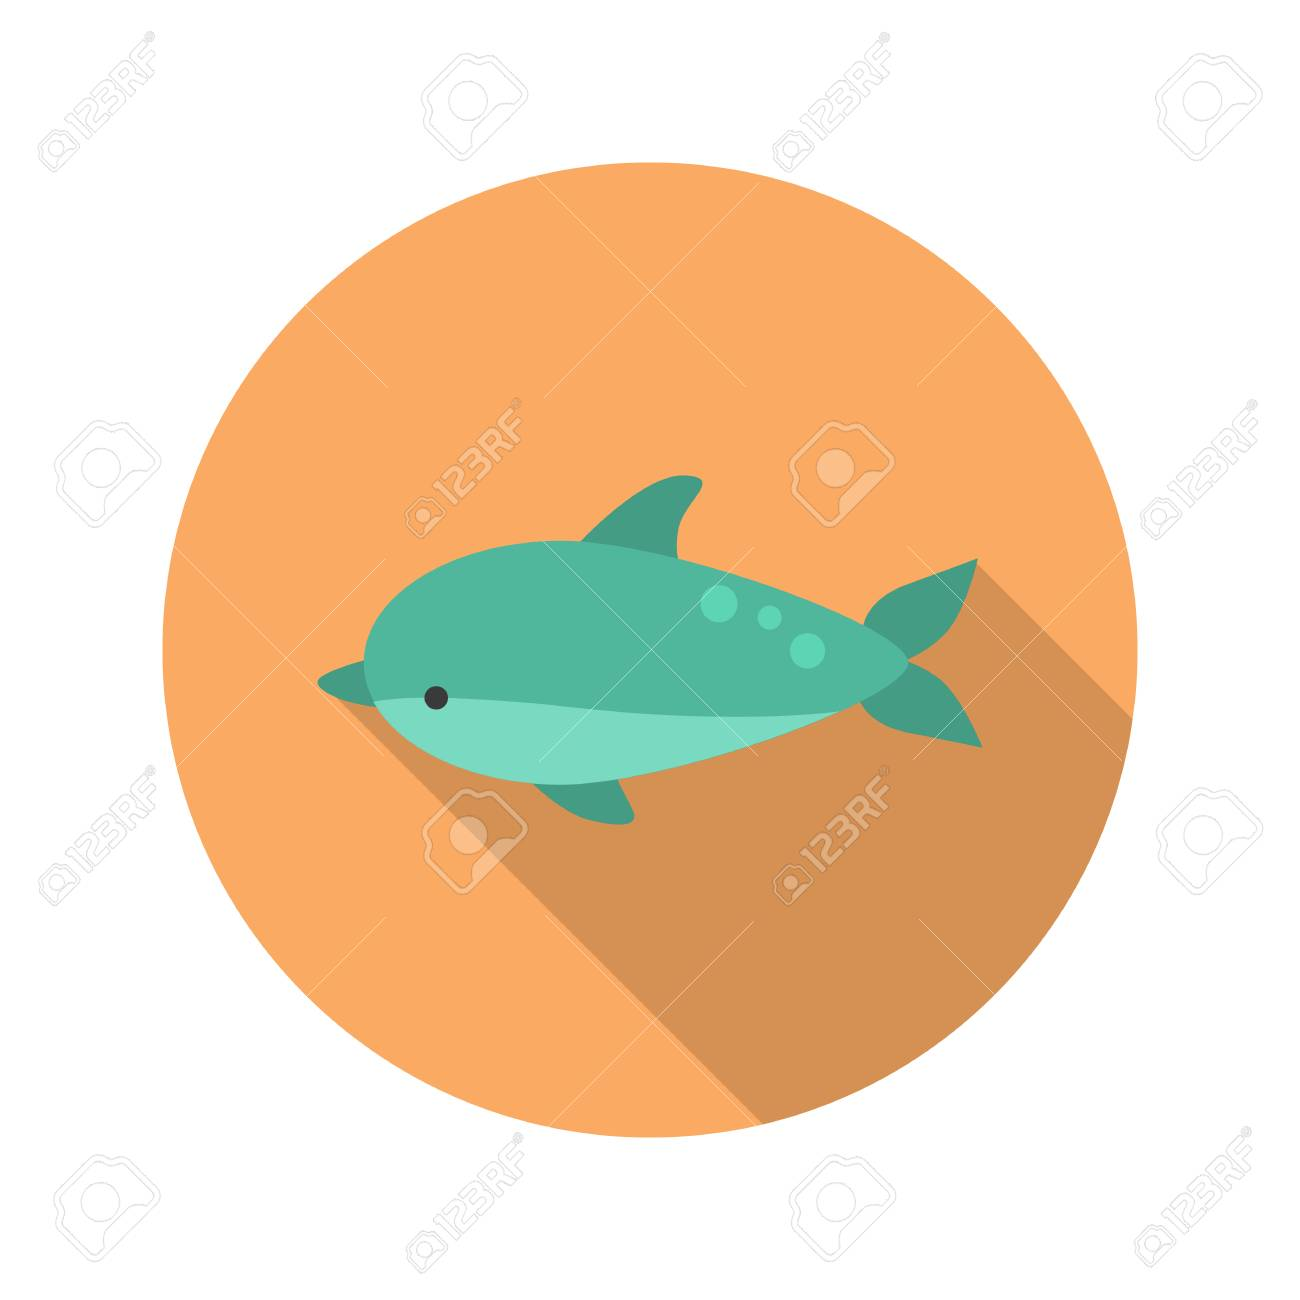 Dolphin Color Flat Icon Royalty Free Cliparts, Vectors, And Stock ...